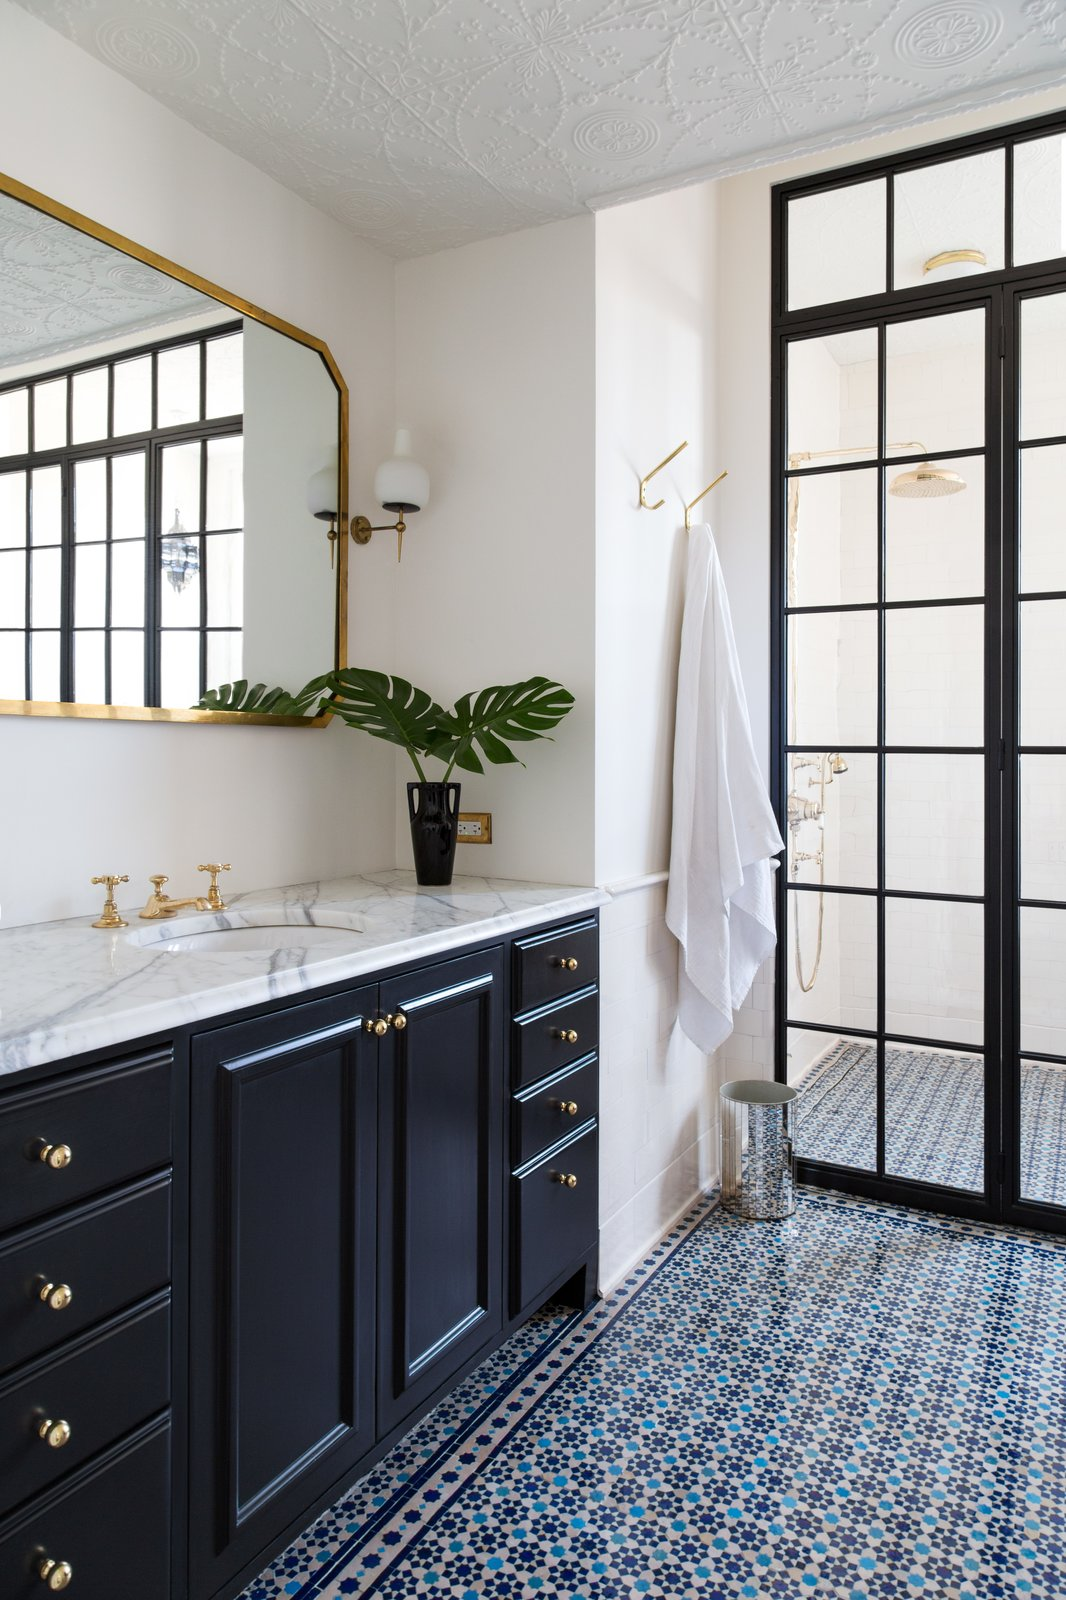 Bath Room, Marble Counter, Ceramic Tile Floor, Drop In Sink, and Enclosed Shower  Photo 21 of 22 in A 19th-Century Schoolhouse in Brooklyn Becomes a Classy Apartment